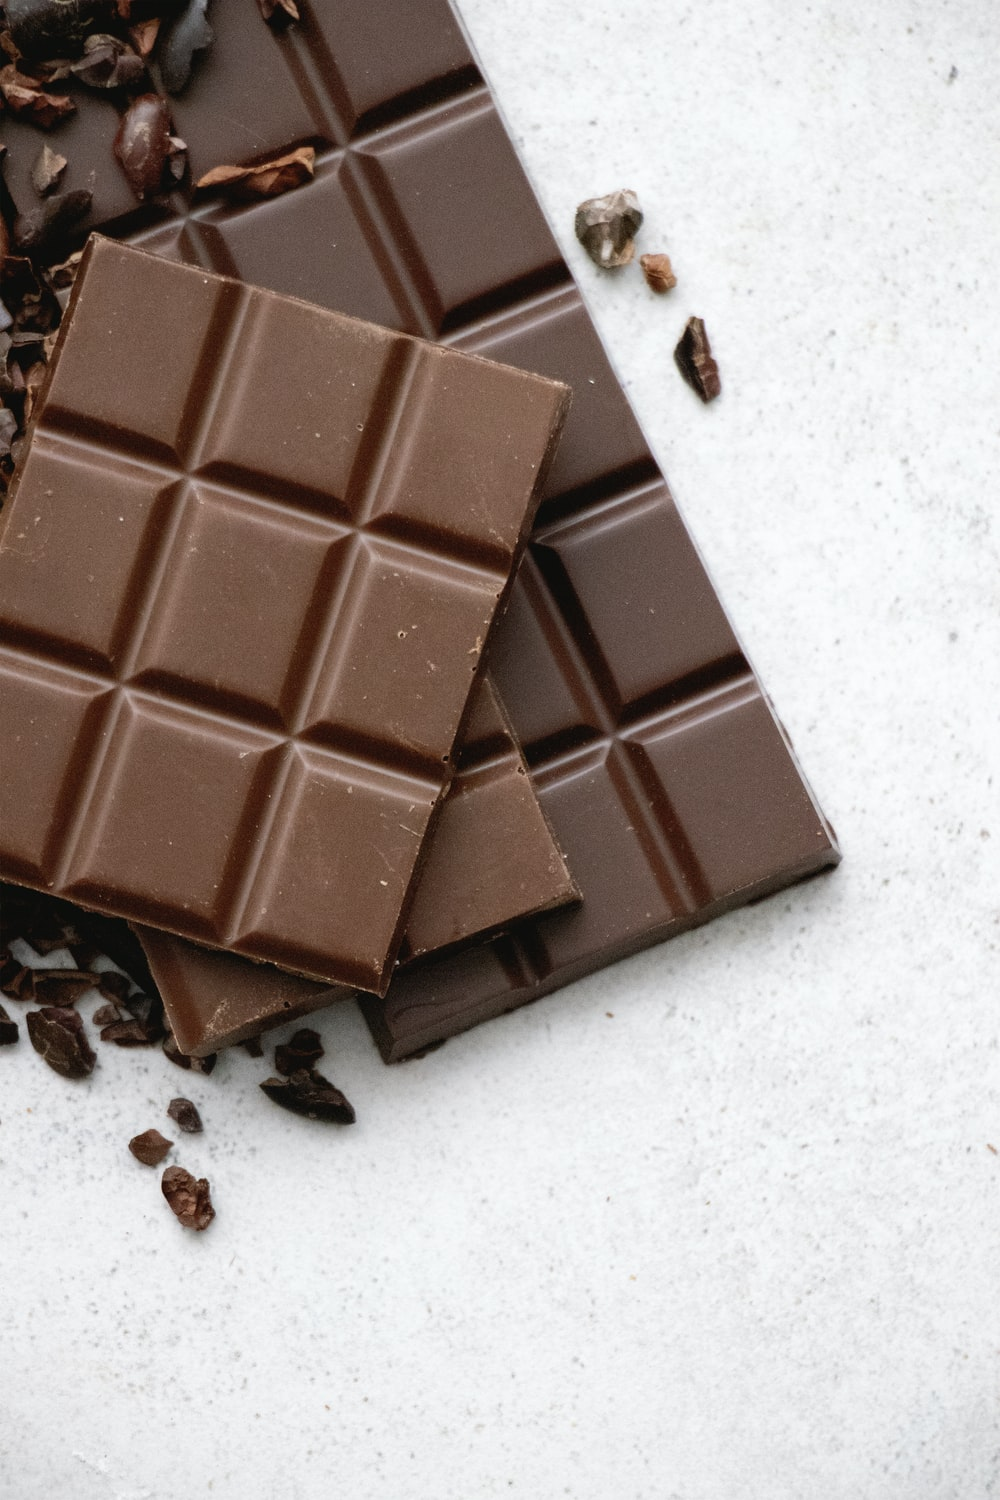 chocolate bar on white table